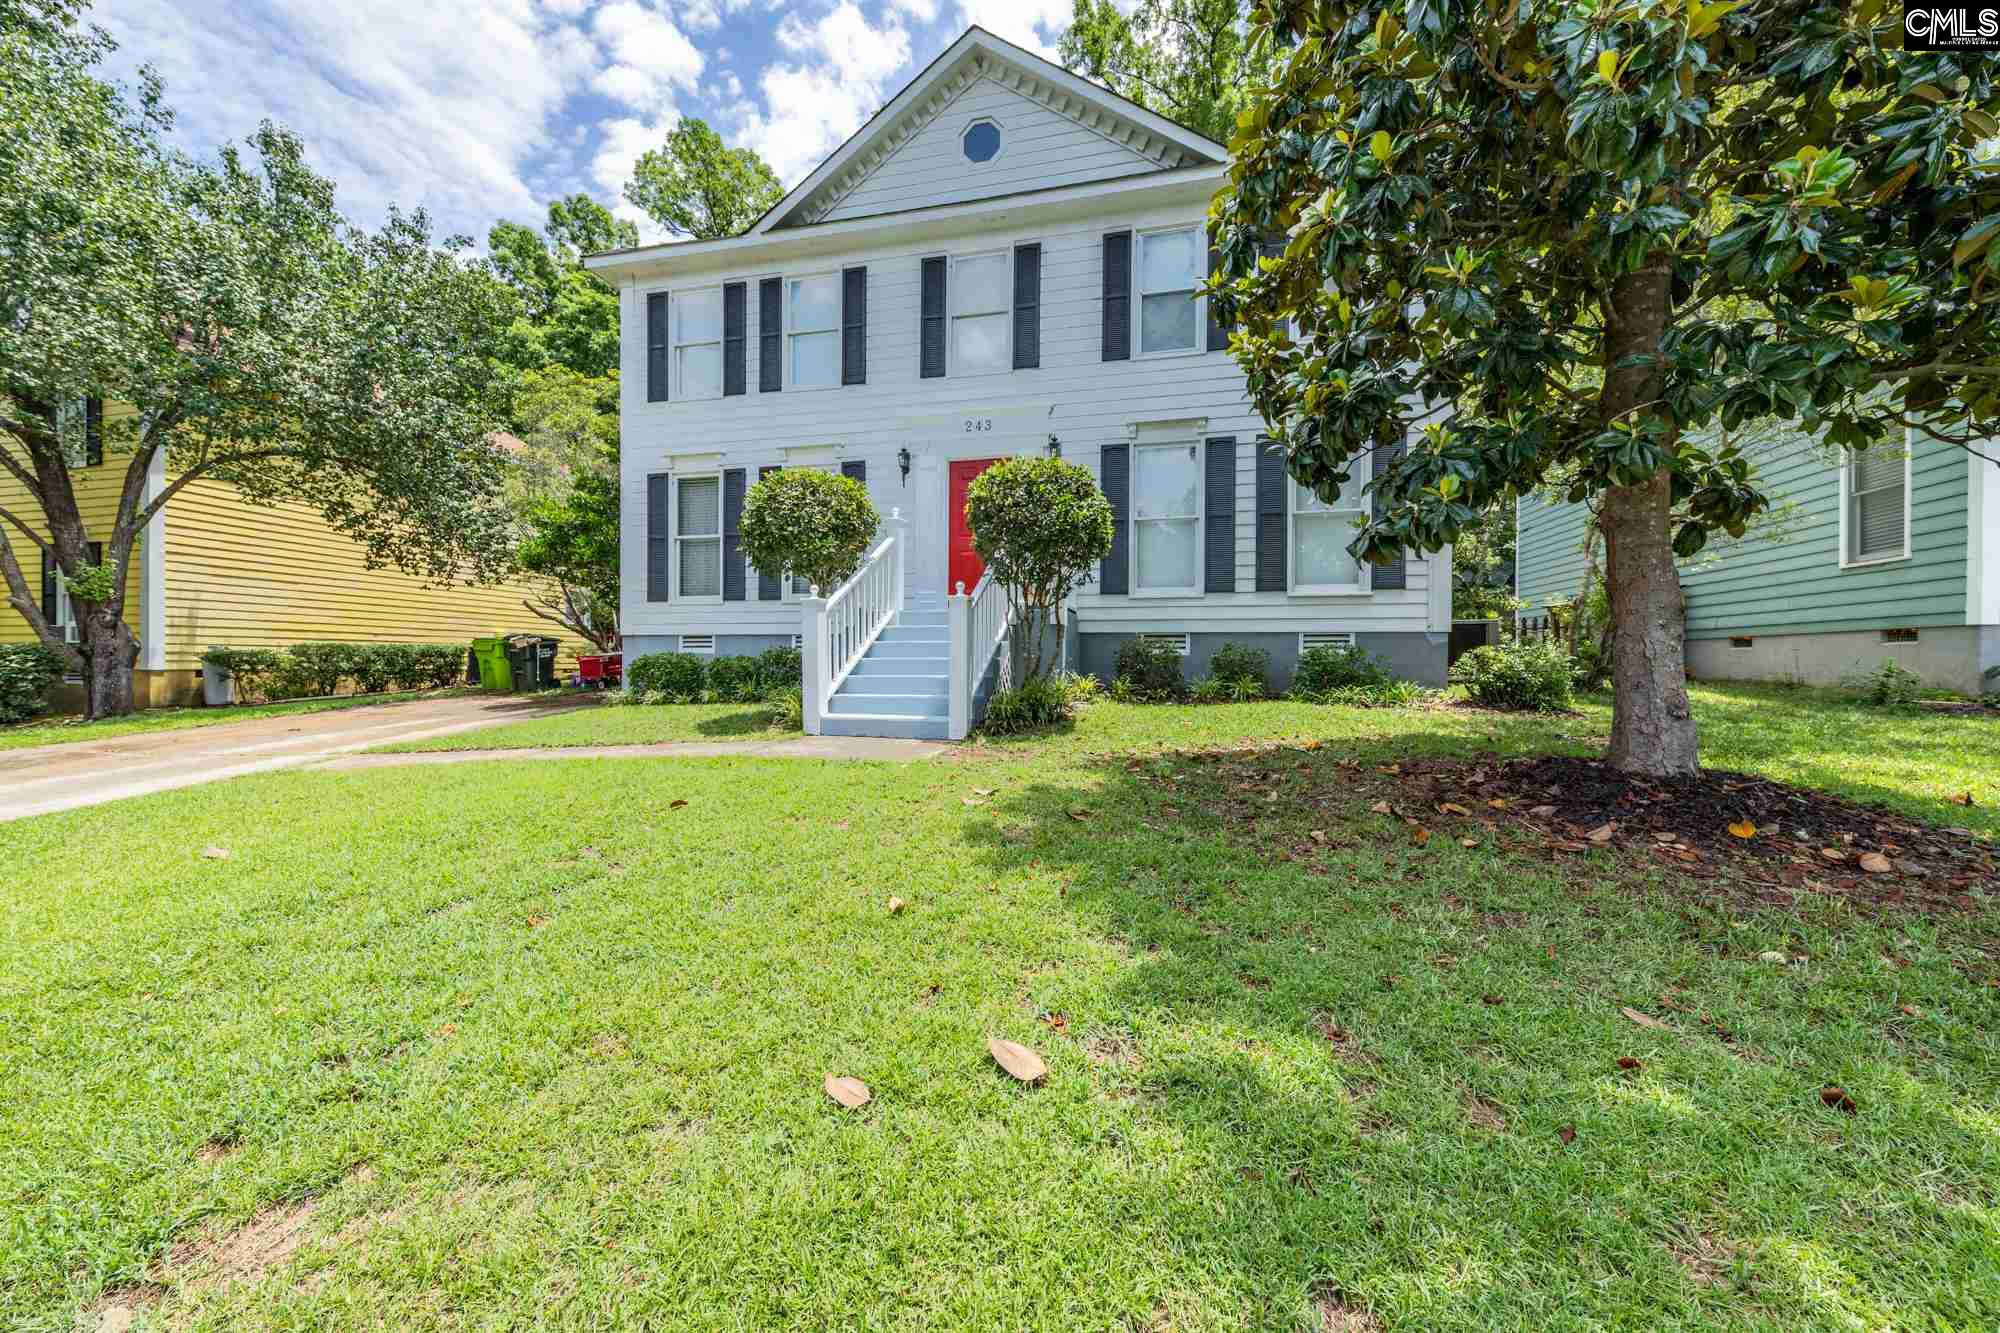 243 Torrington Irmo, SC 29063